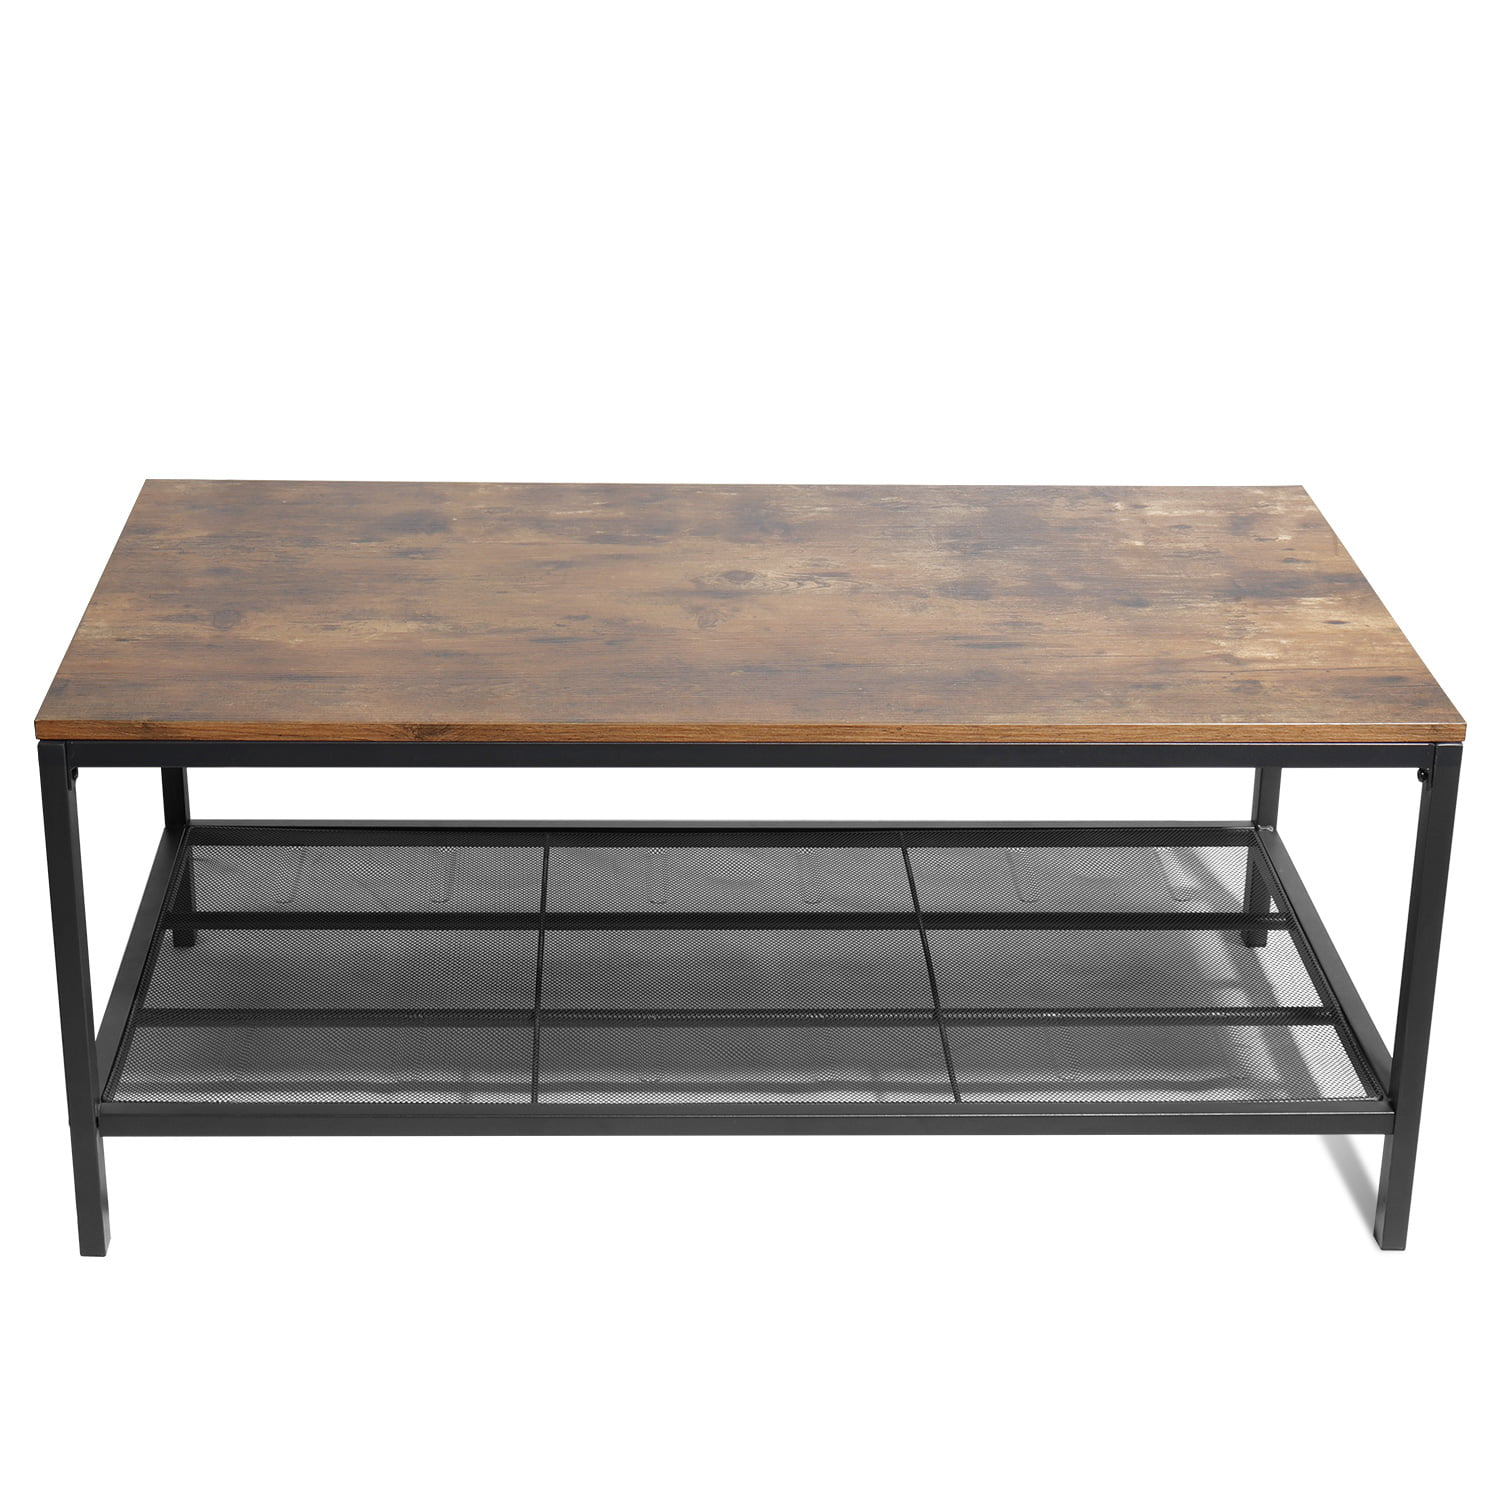 segmart farmhouse coffee table solid wood cocktail table with storage mesh shelf rectangular tea table with frosted black iron frame for living